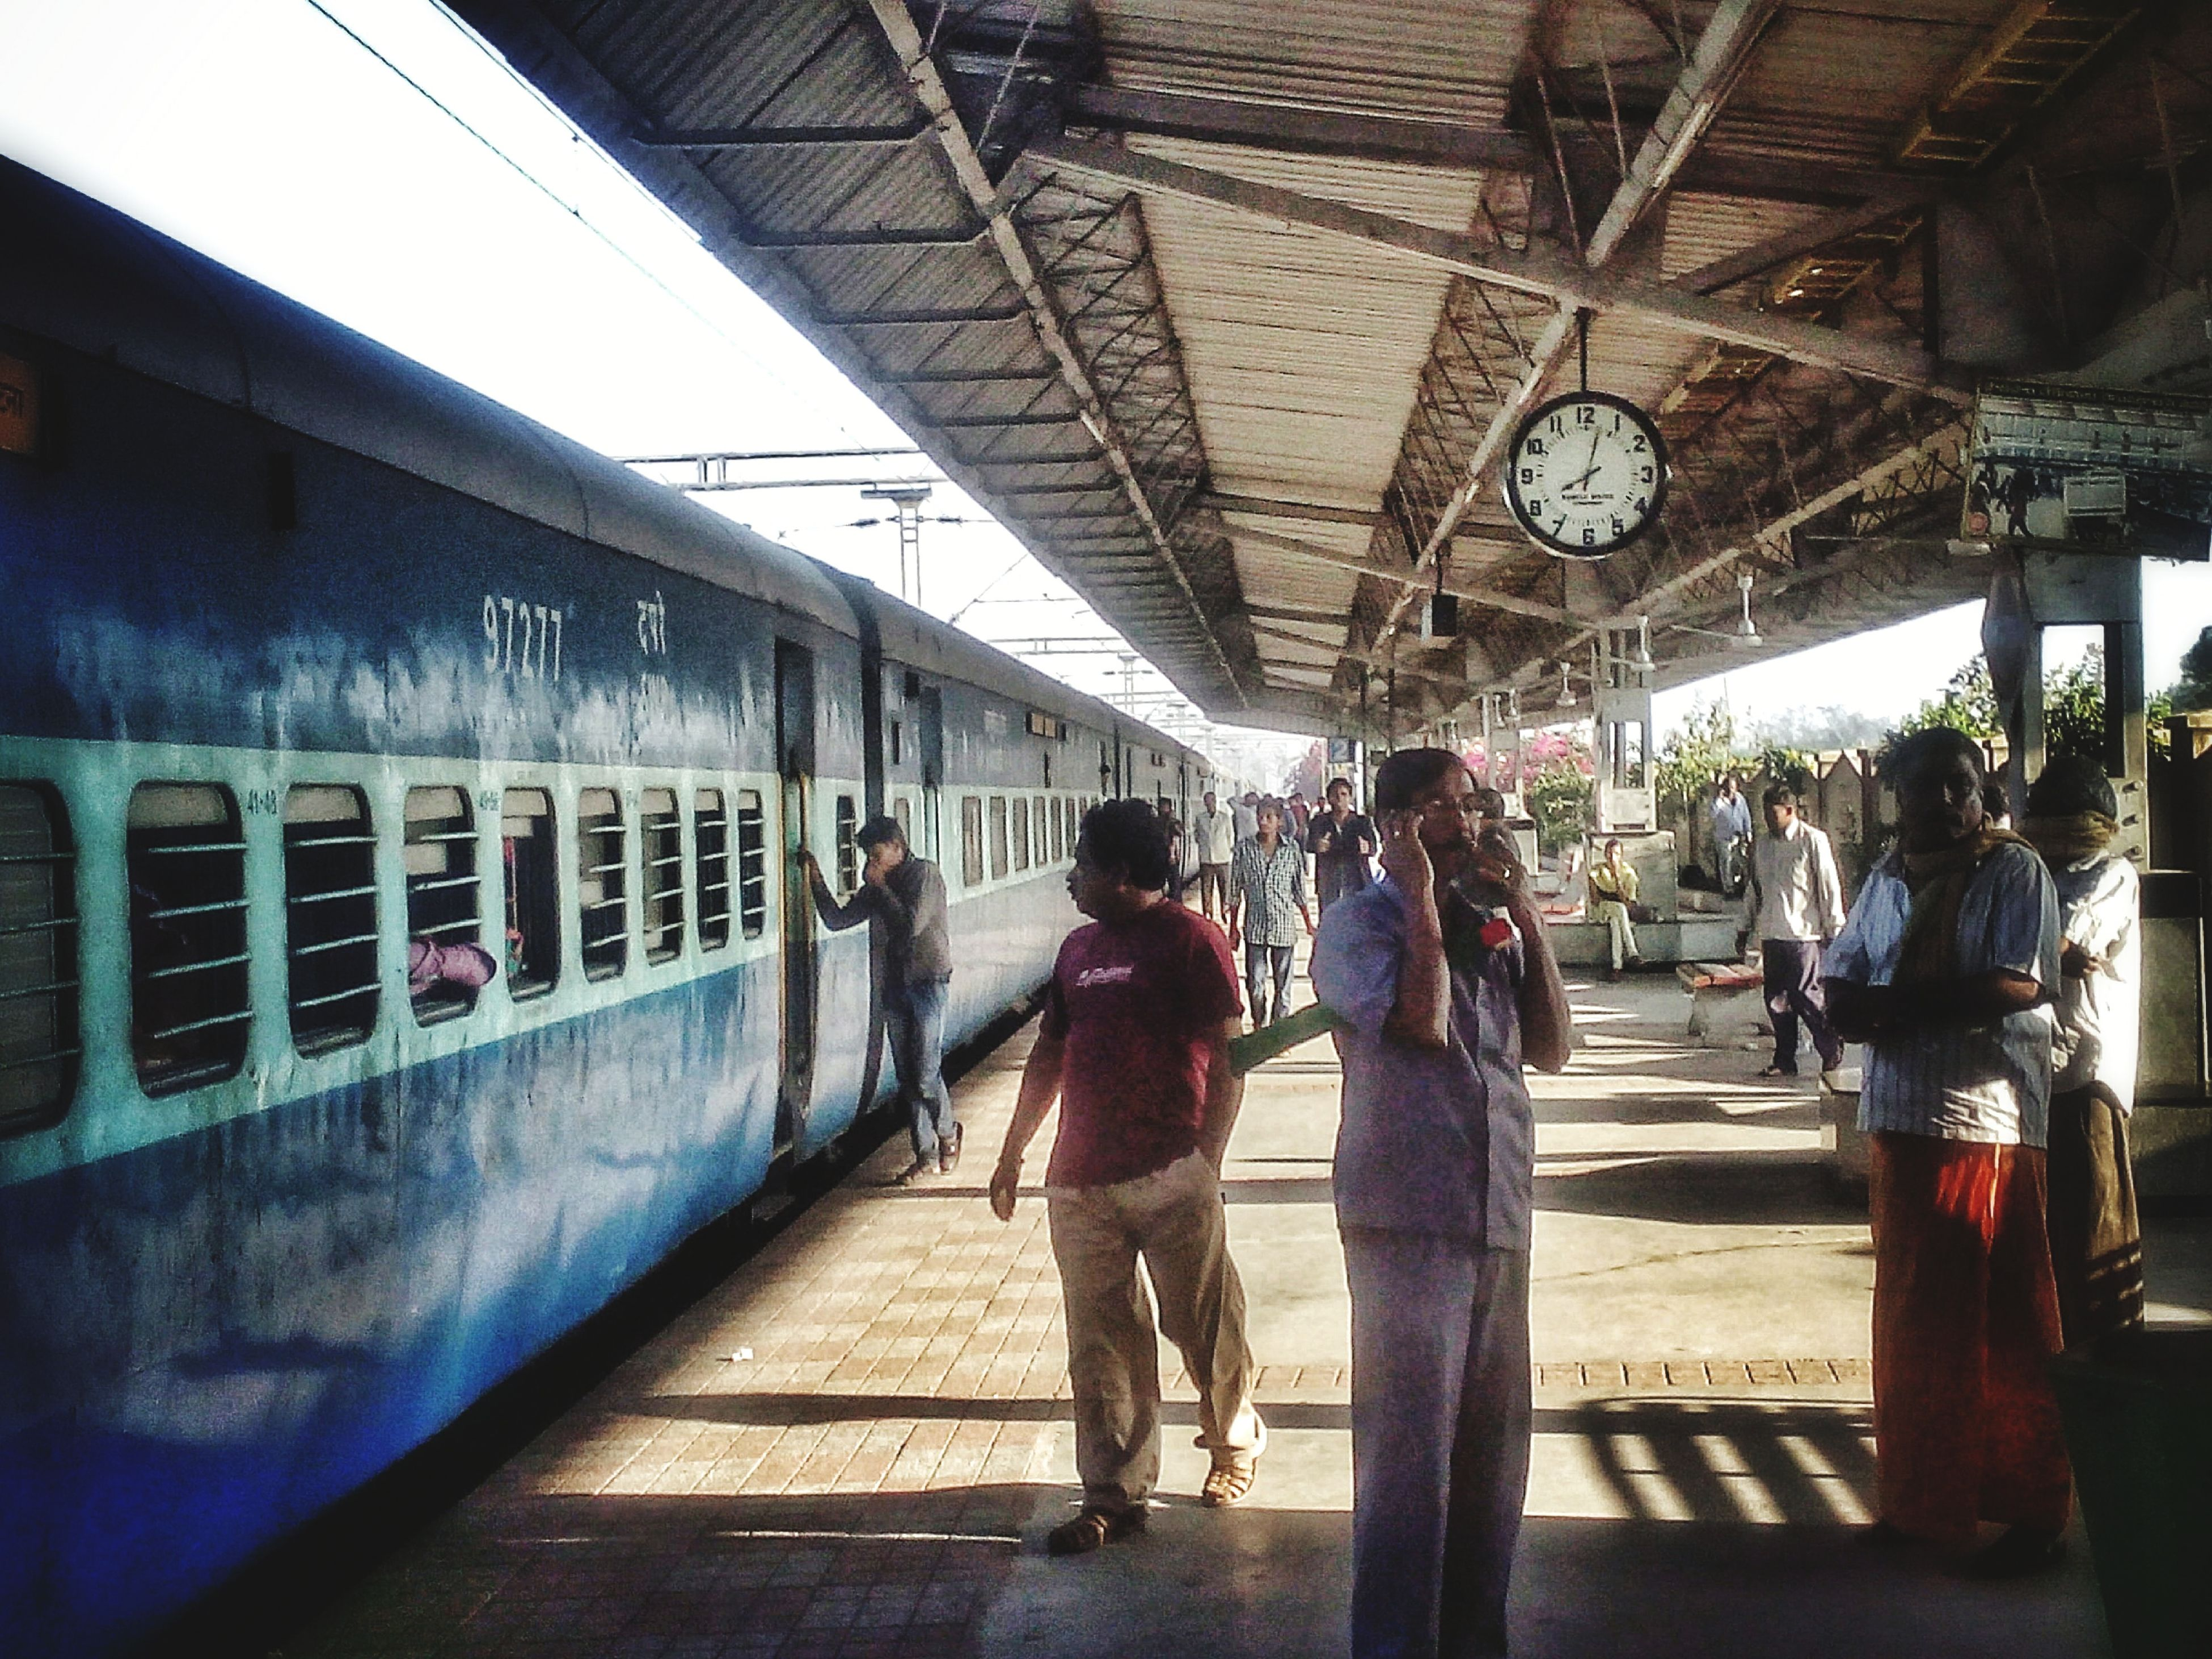 indoors, men, lifestyles, person, leisure activity, full length, railroad station, walking, architecture, public transportation, travel, ceiling, built structure, rail transportation, transportation, passenger, railroad station platform, rear view, casual clothing